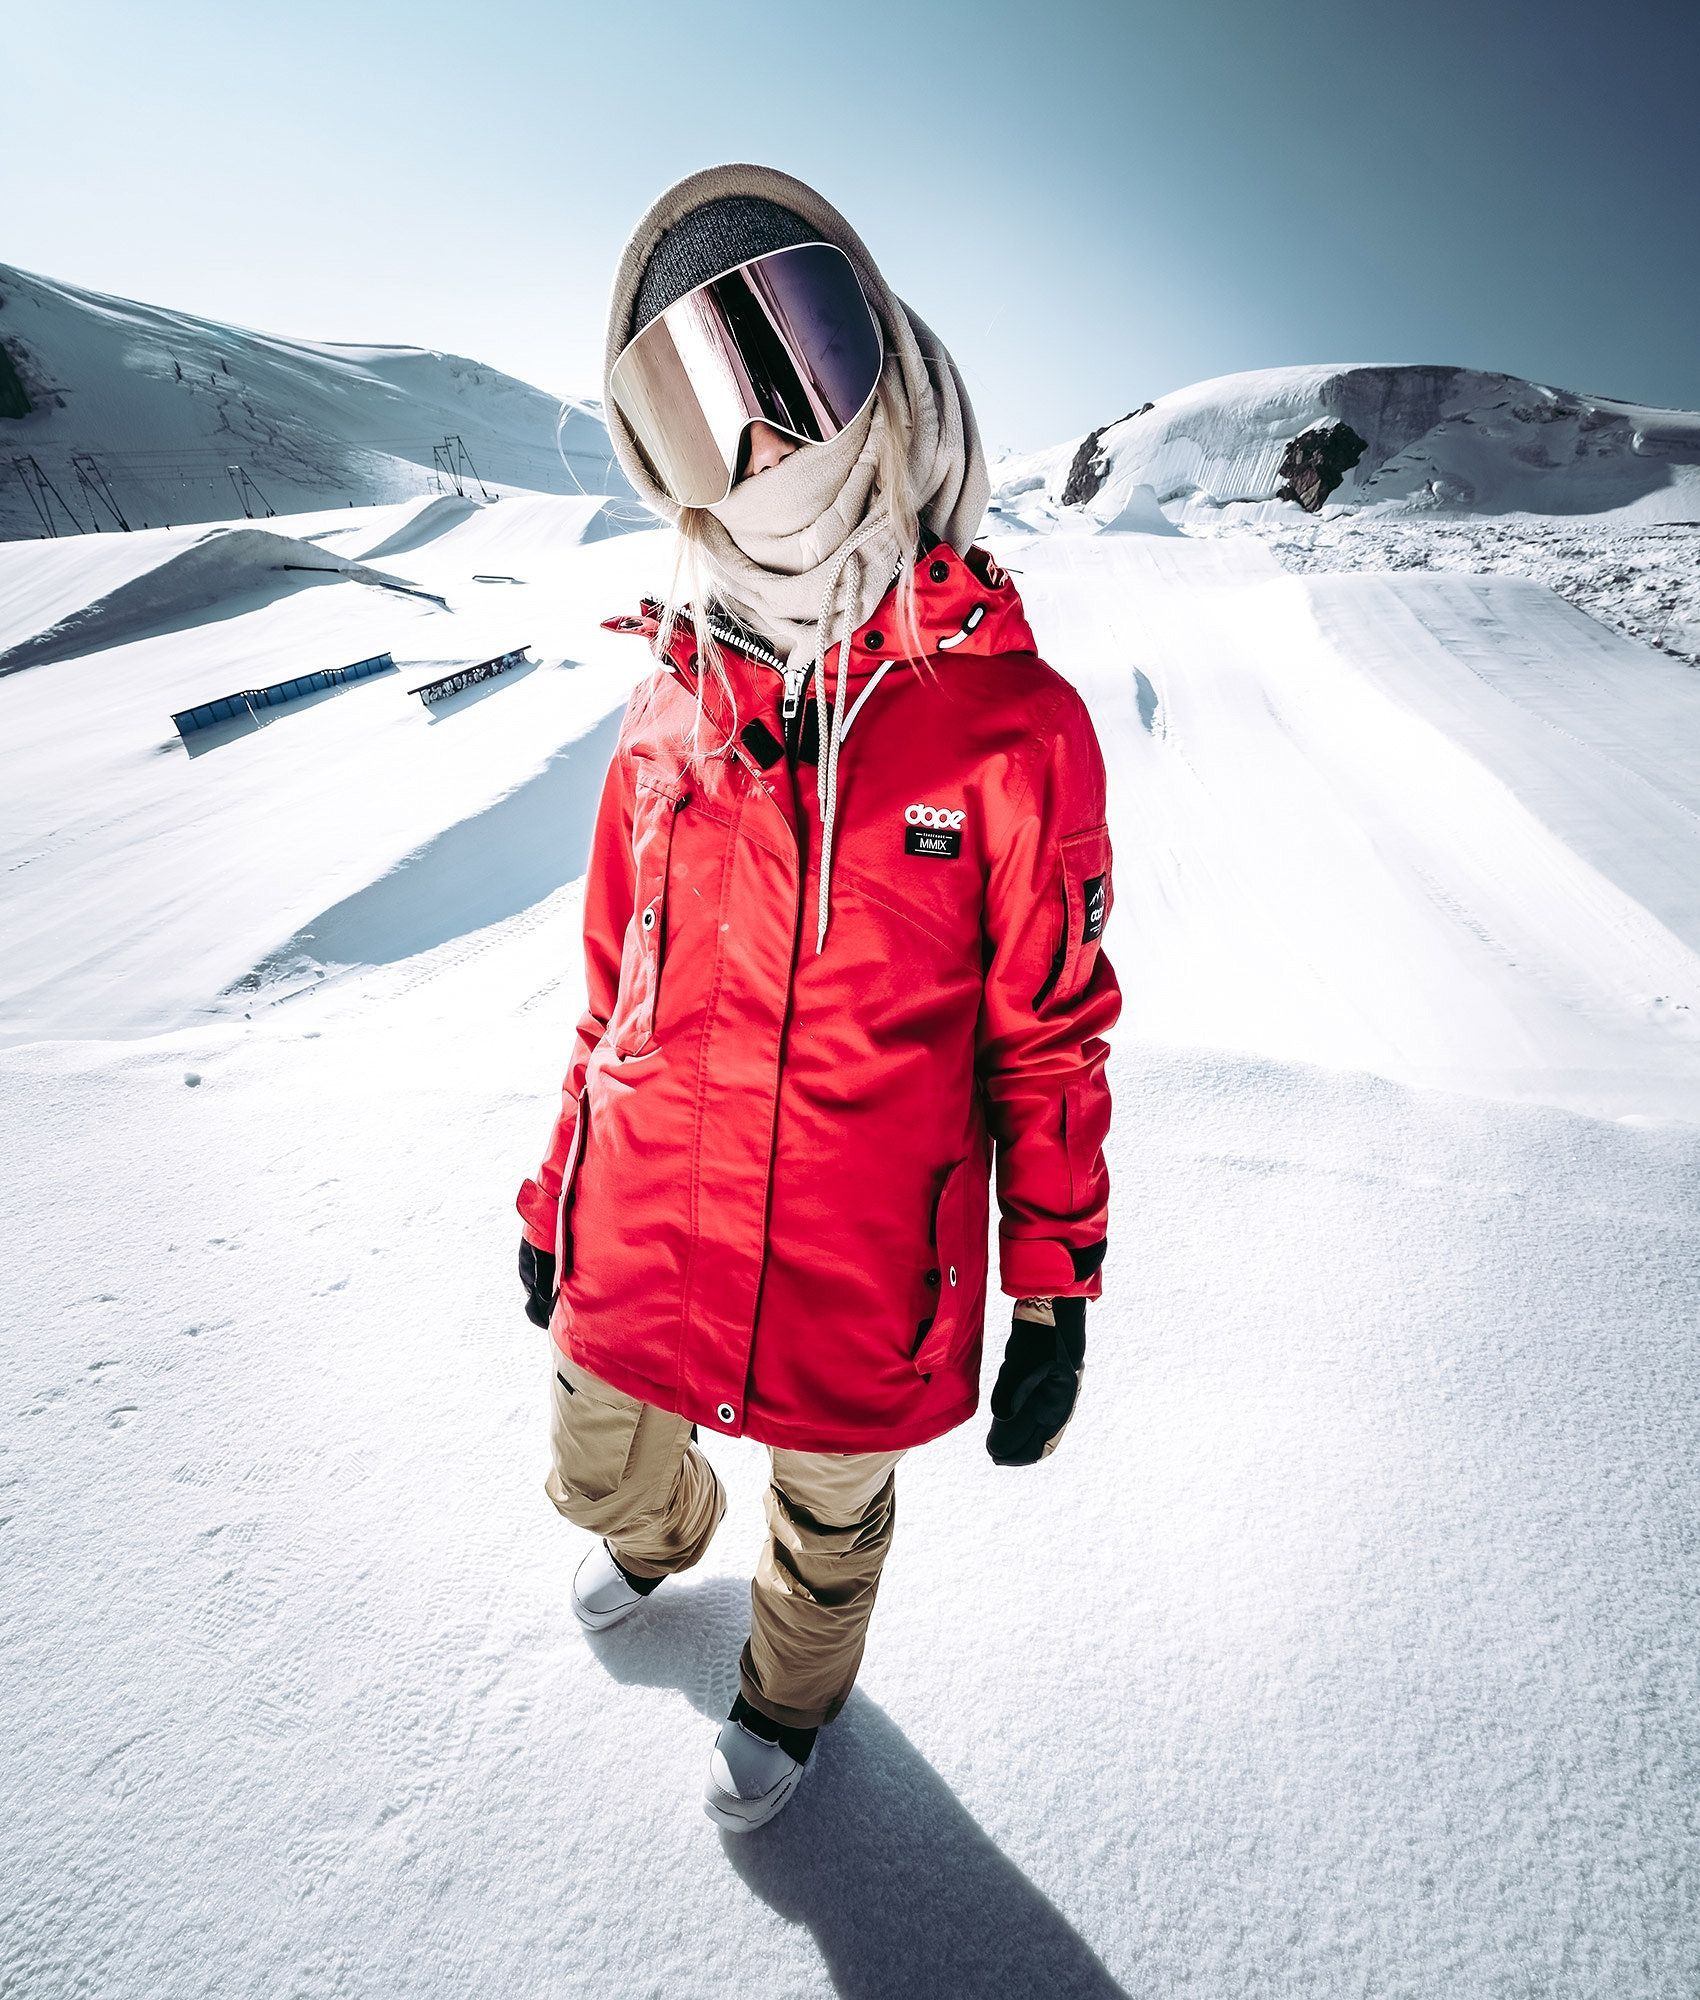 c5fbcb760b snowboarding gear womens  snowboard outfit